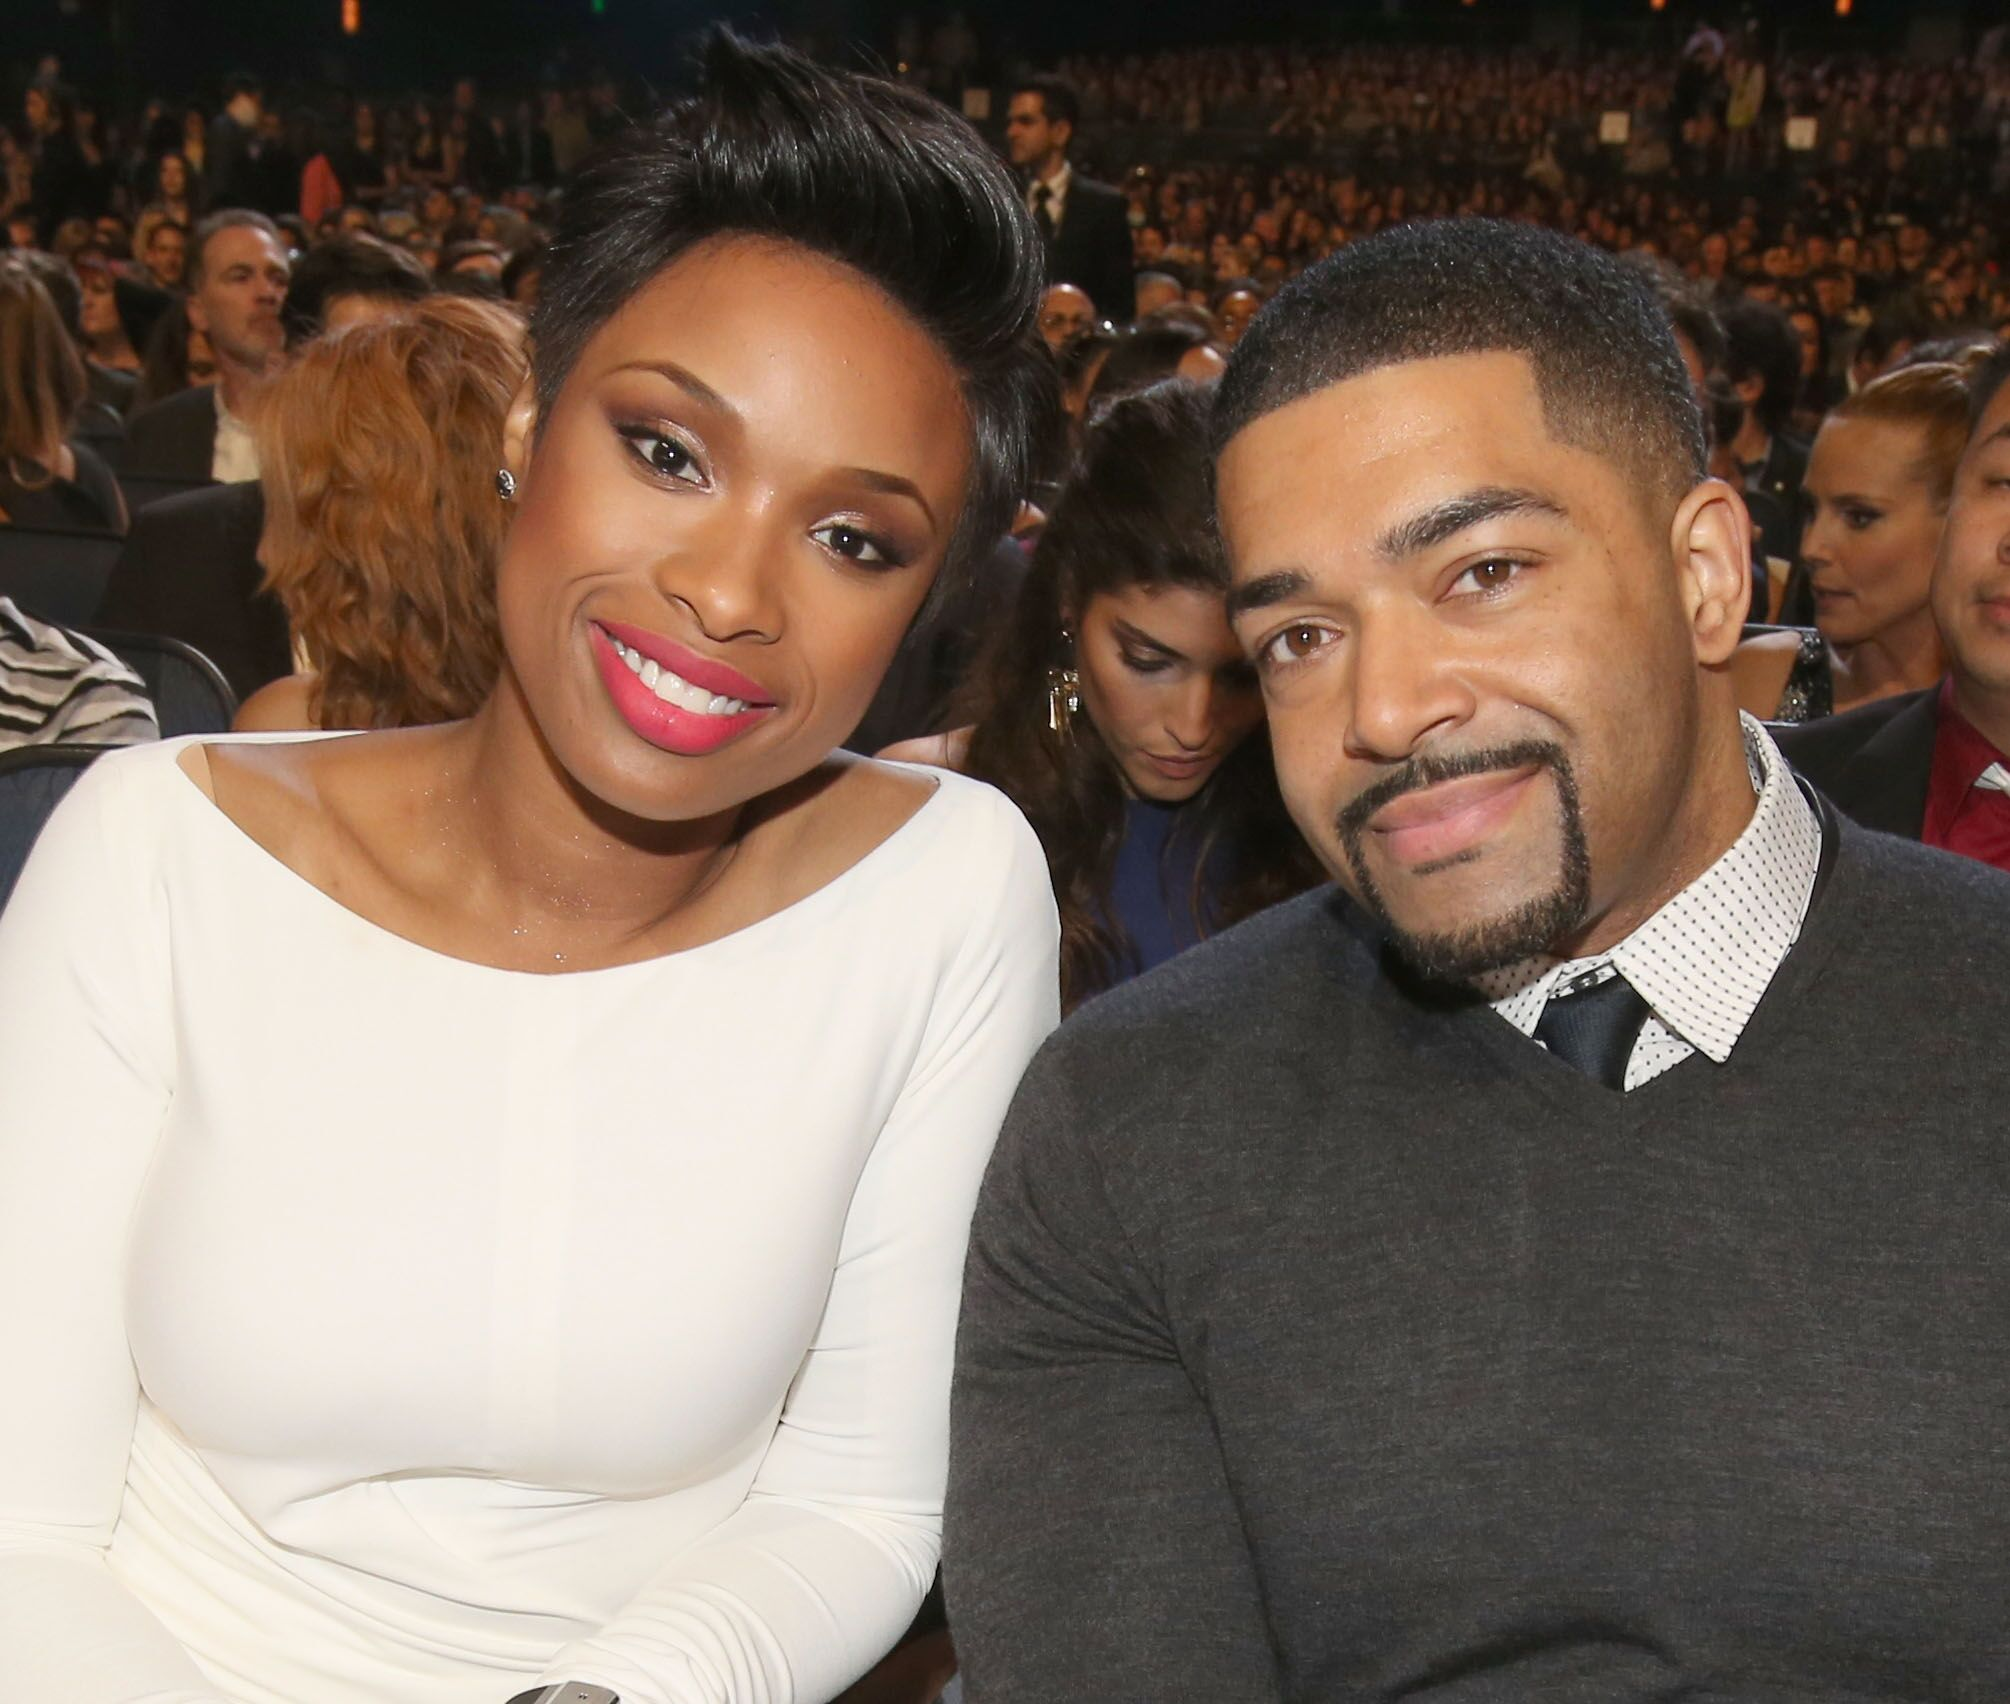 Jennifer Hudson (L) and David Otunga attend The 40th Annual People's Choice Awards at Nokia Theatre L.A. Live on January 8, 2014 | Photo: Getty Images